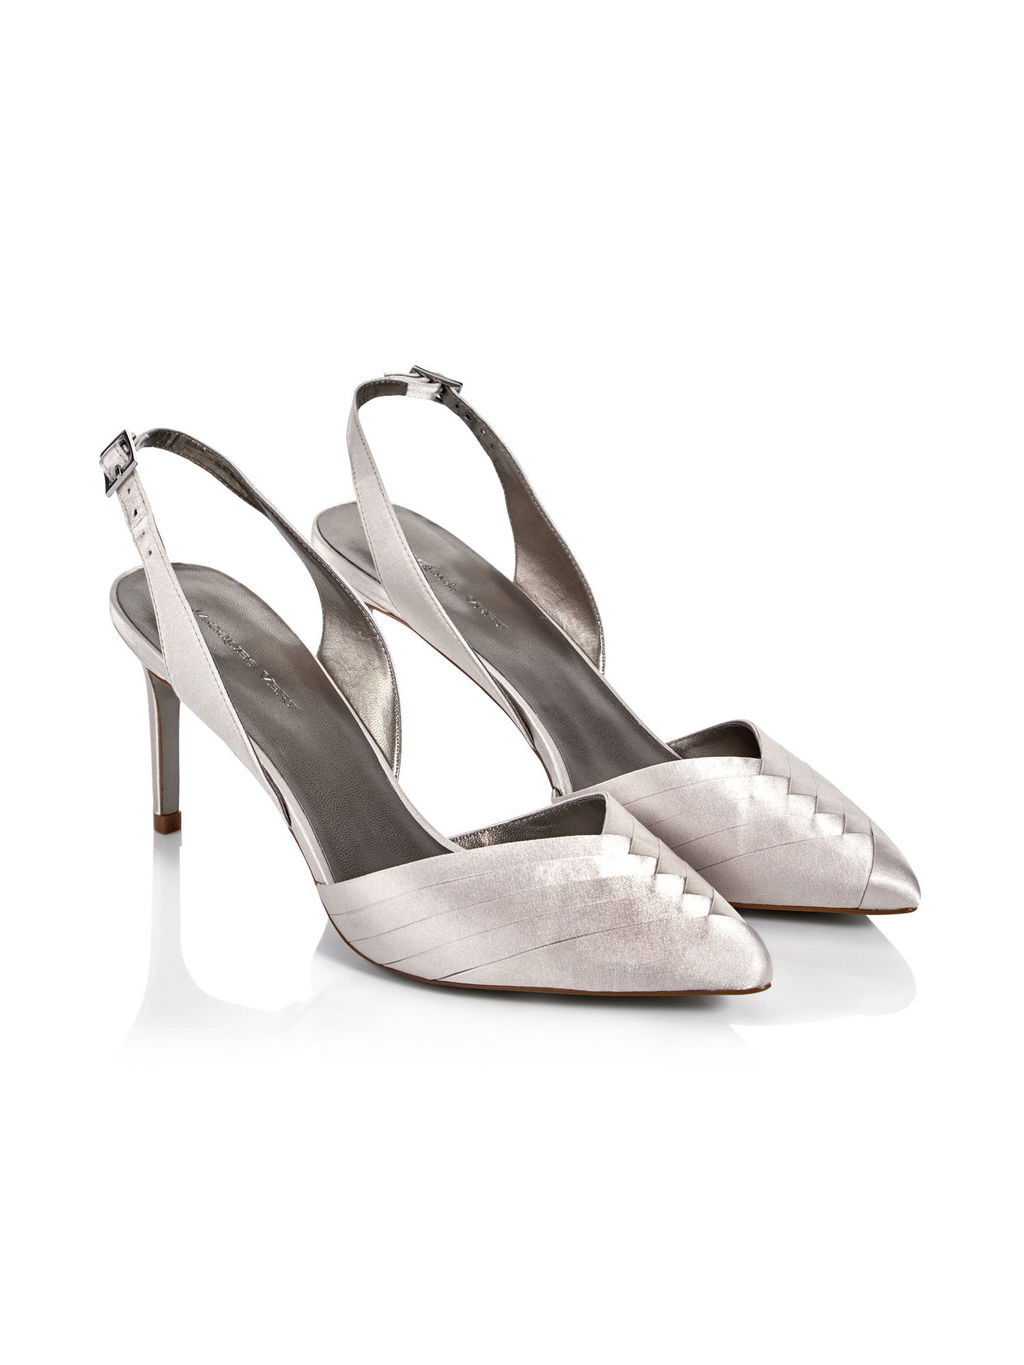 Pleated Point Shoe - predominant colour: silver; occasions: evening, occasion; material: satin; heel height: high; ankle detail: ankle strap; heel: stiletto; toe: pointed toe; style: slingbacks; finish: plain; pattern: plain; season: s/s 2016; wardrobe: event